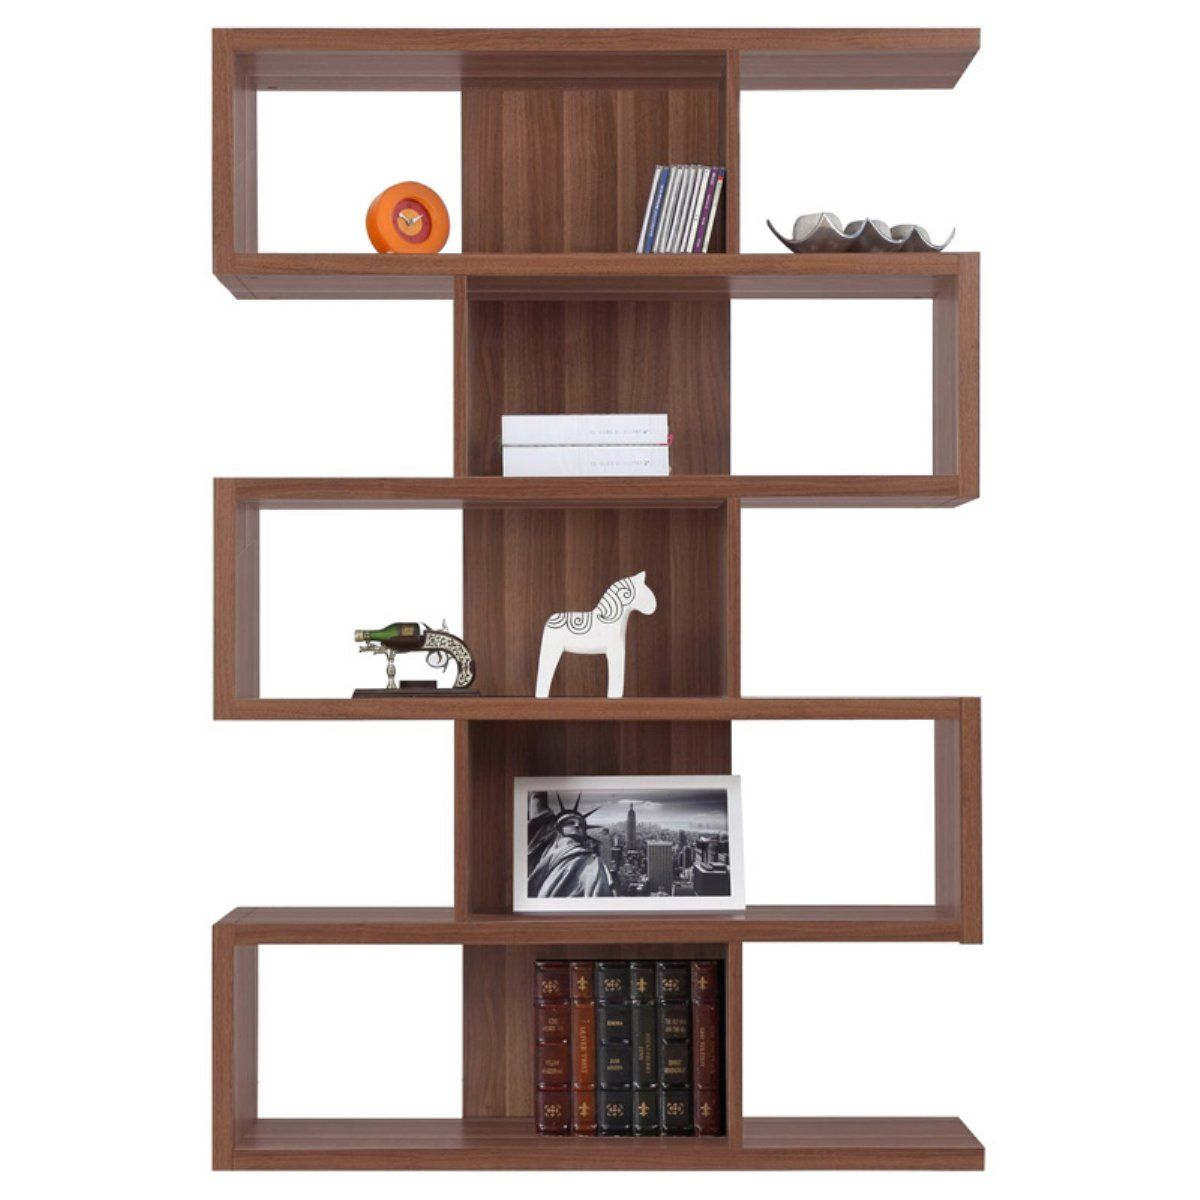 decoration-classy-room-partition-design-for-small-apartment-living-room-areas-by-brown-modern-wooden-shelving-units-inspiration-design-living-room-partition-space-partition-modern-partition.jpg 1,200×1,200 pixels